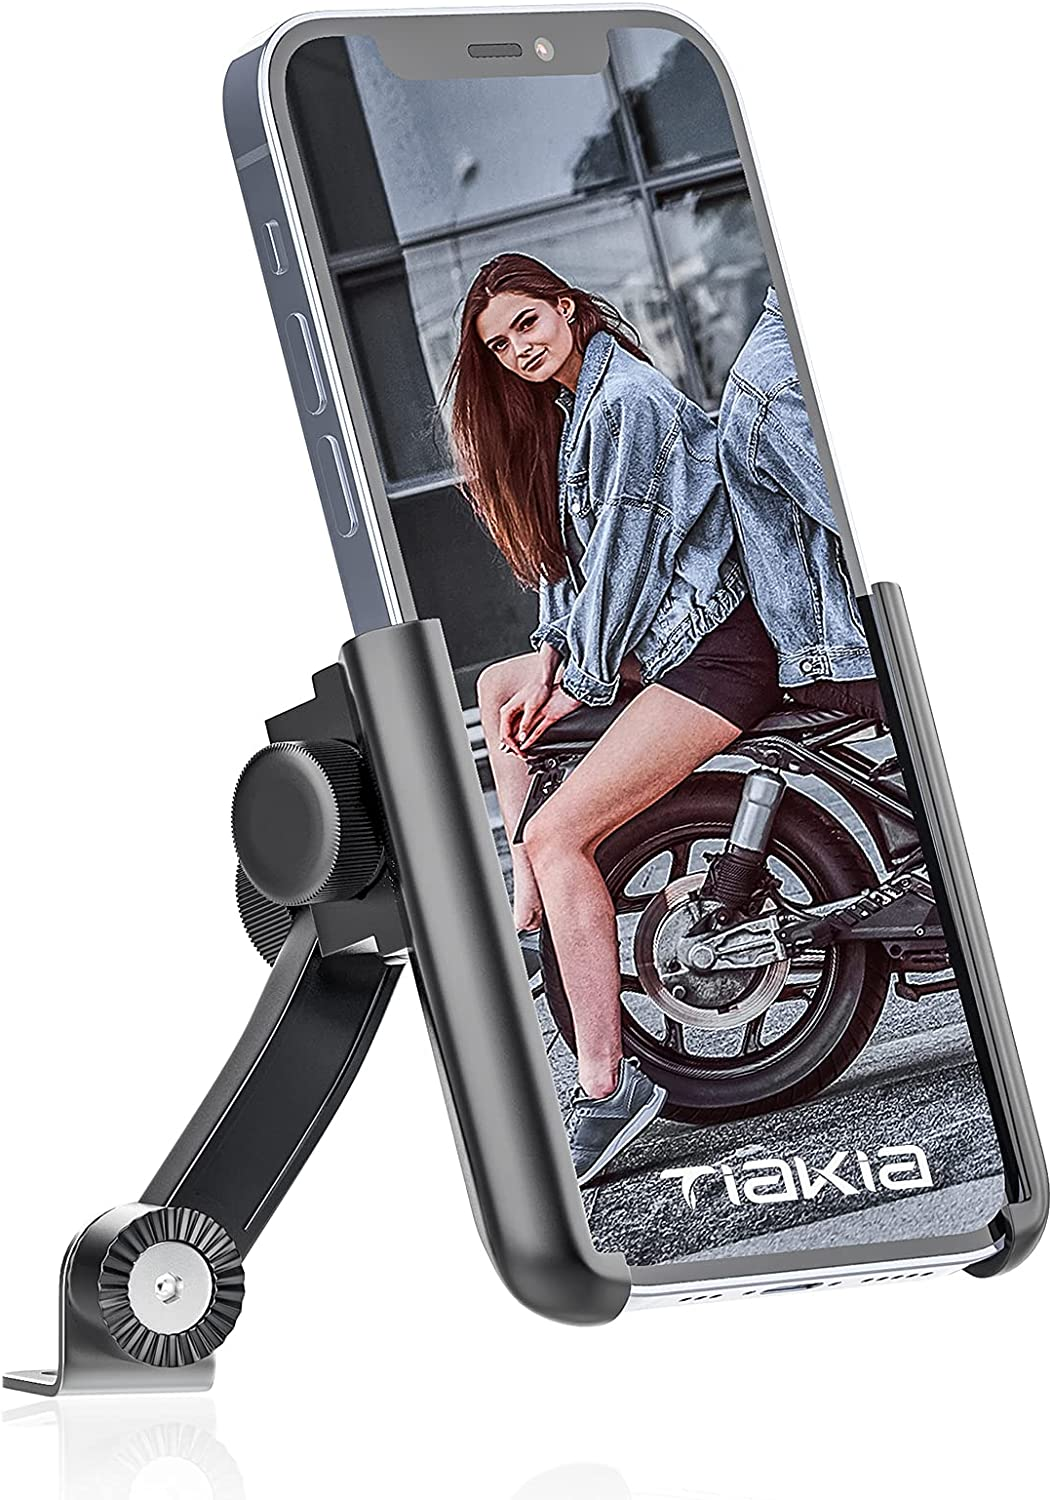 Tiakia Motorcycle Phone Mount Releaseà Free NEW before selling ☆ shipping New Holder【2021 Quick 1S